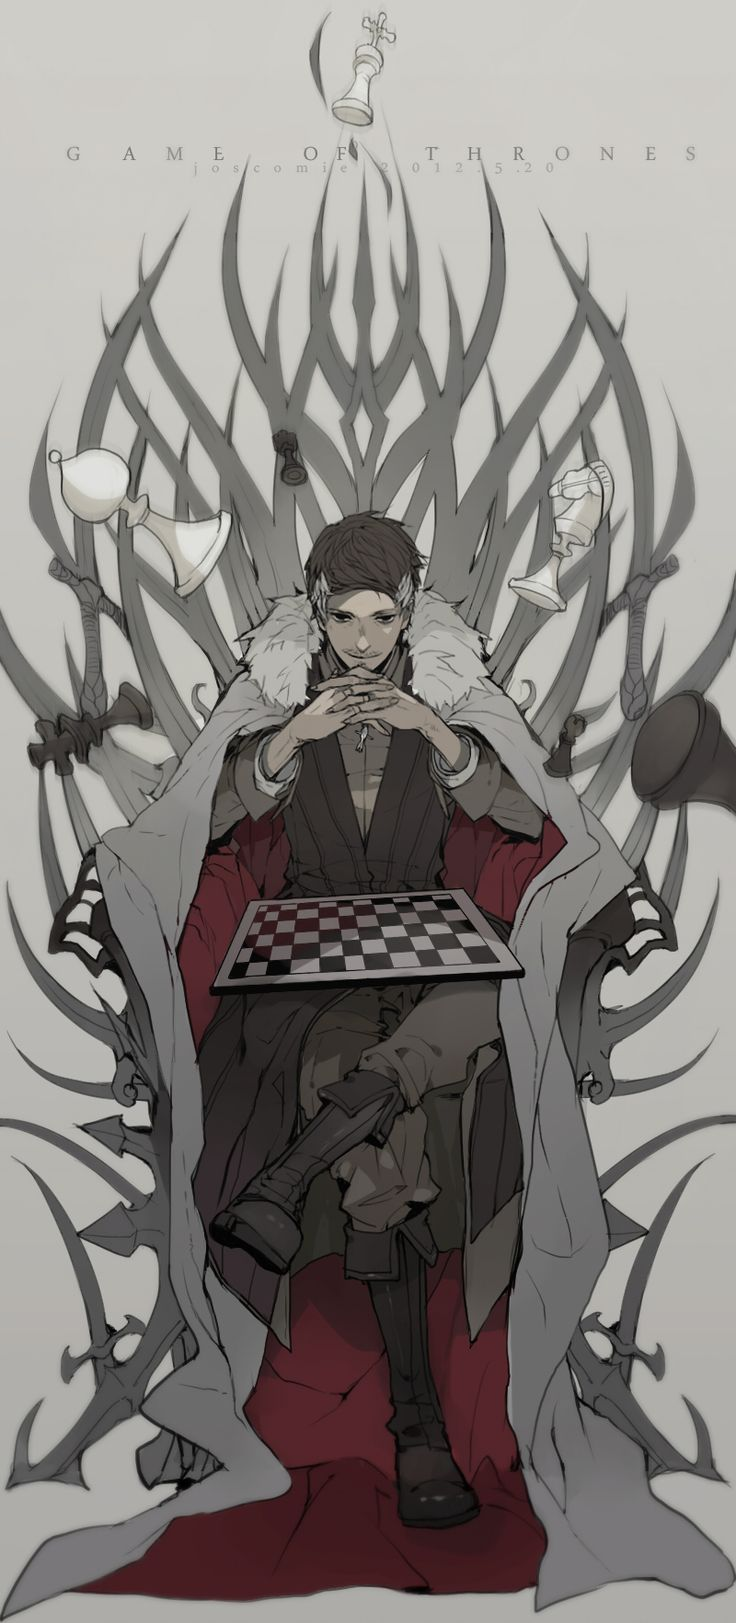 Drawn wallpaper chess anime Best Pinterest Find images 76